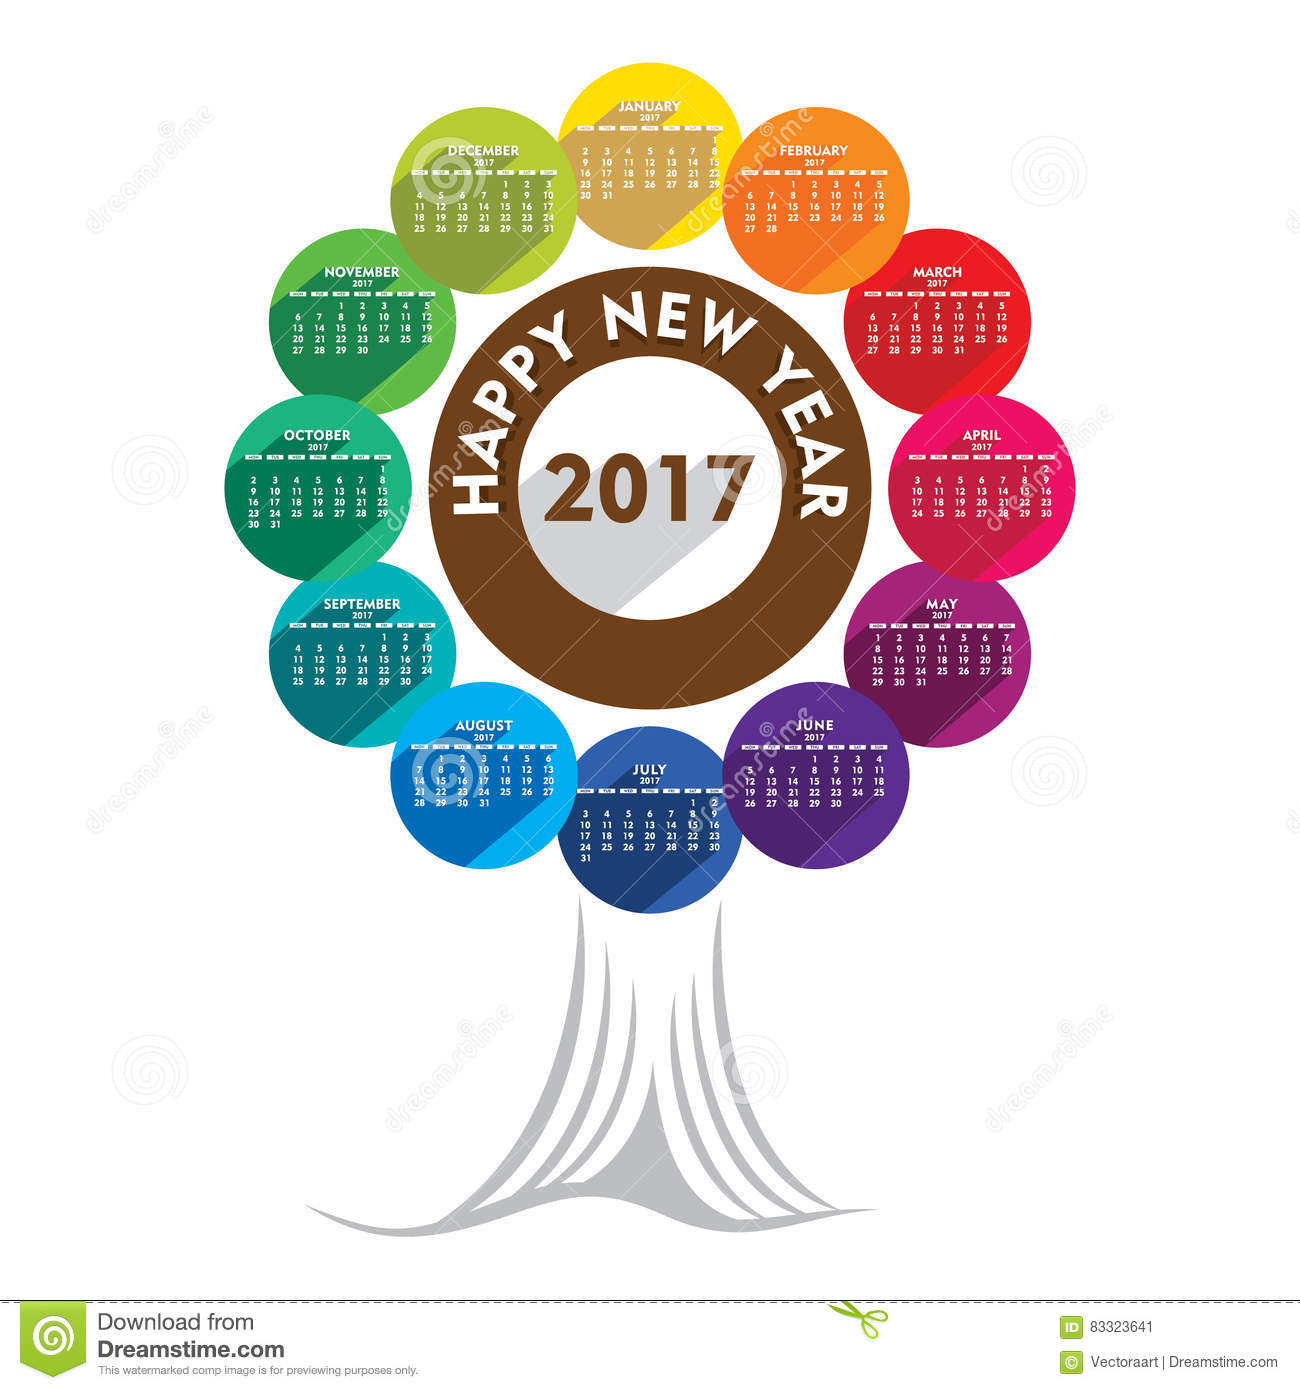 New Year Calendar Design : Colorful new year calendar design stock vector